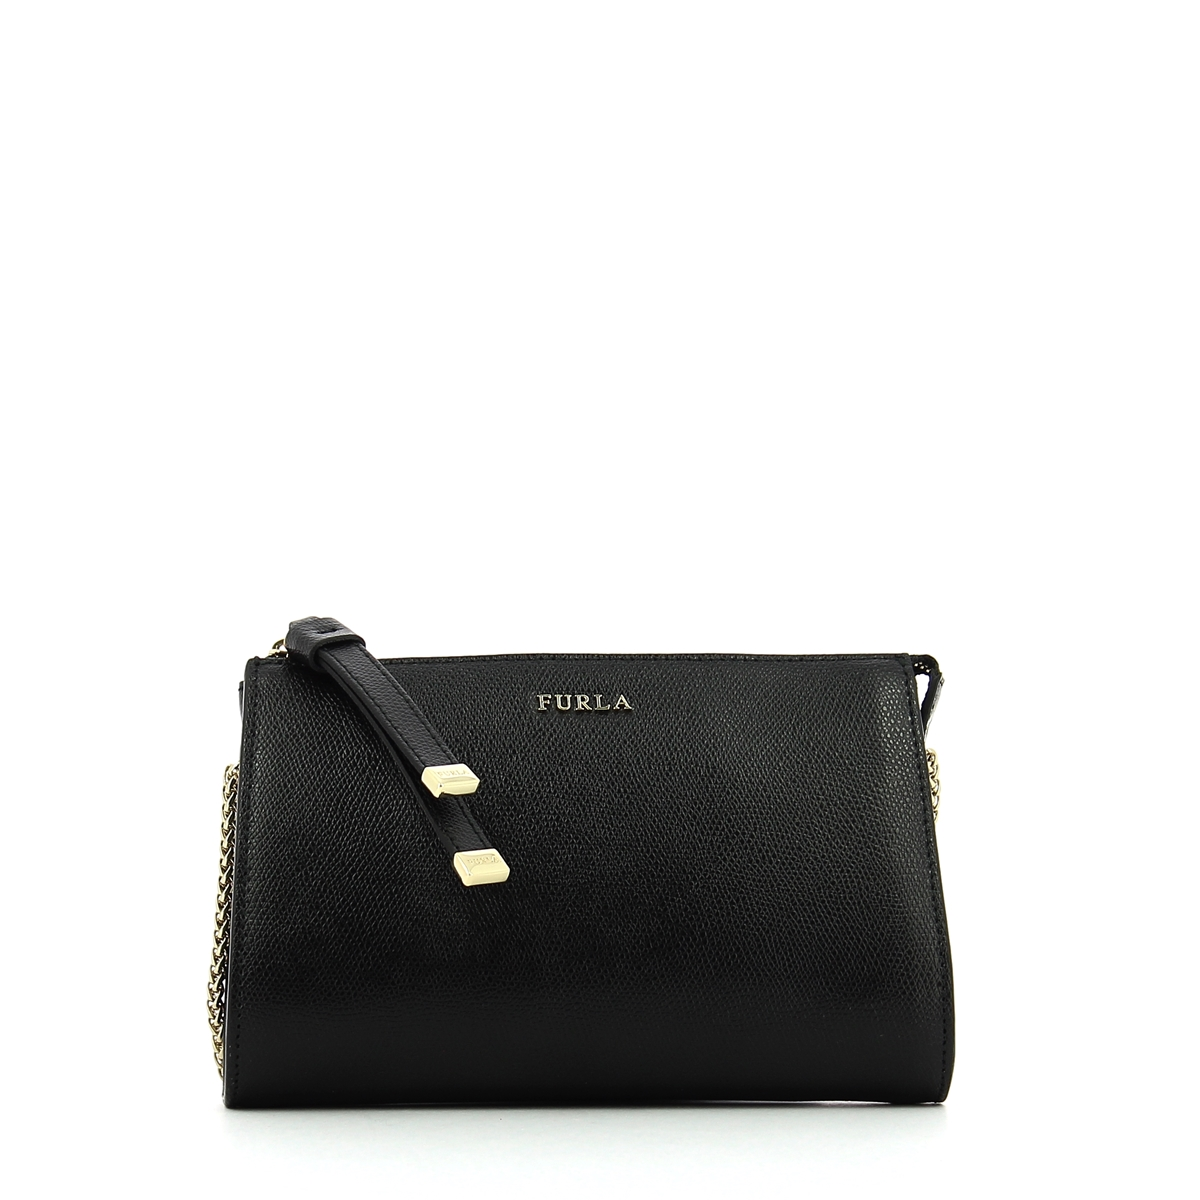 LUNA XL CROSSBODY POUCH 793484